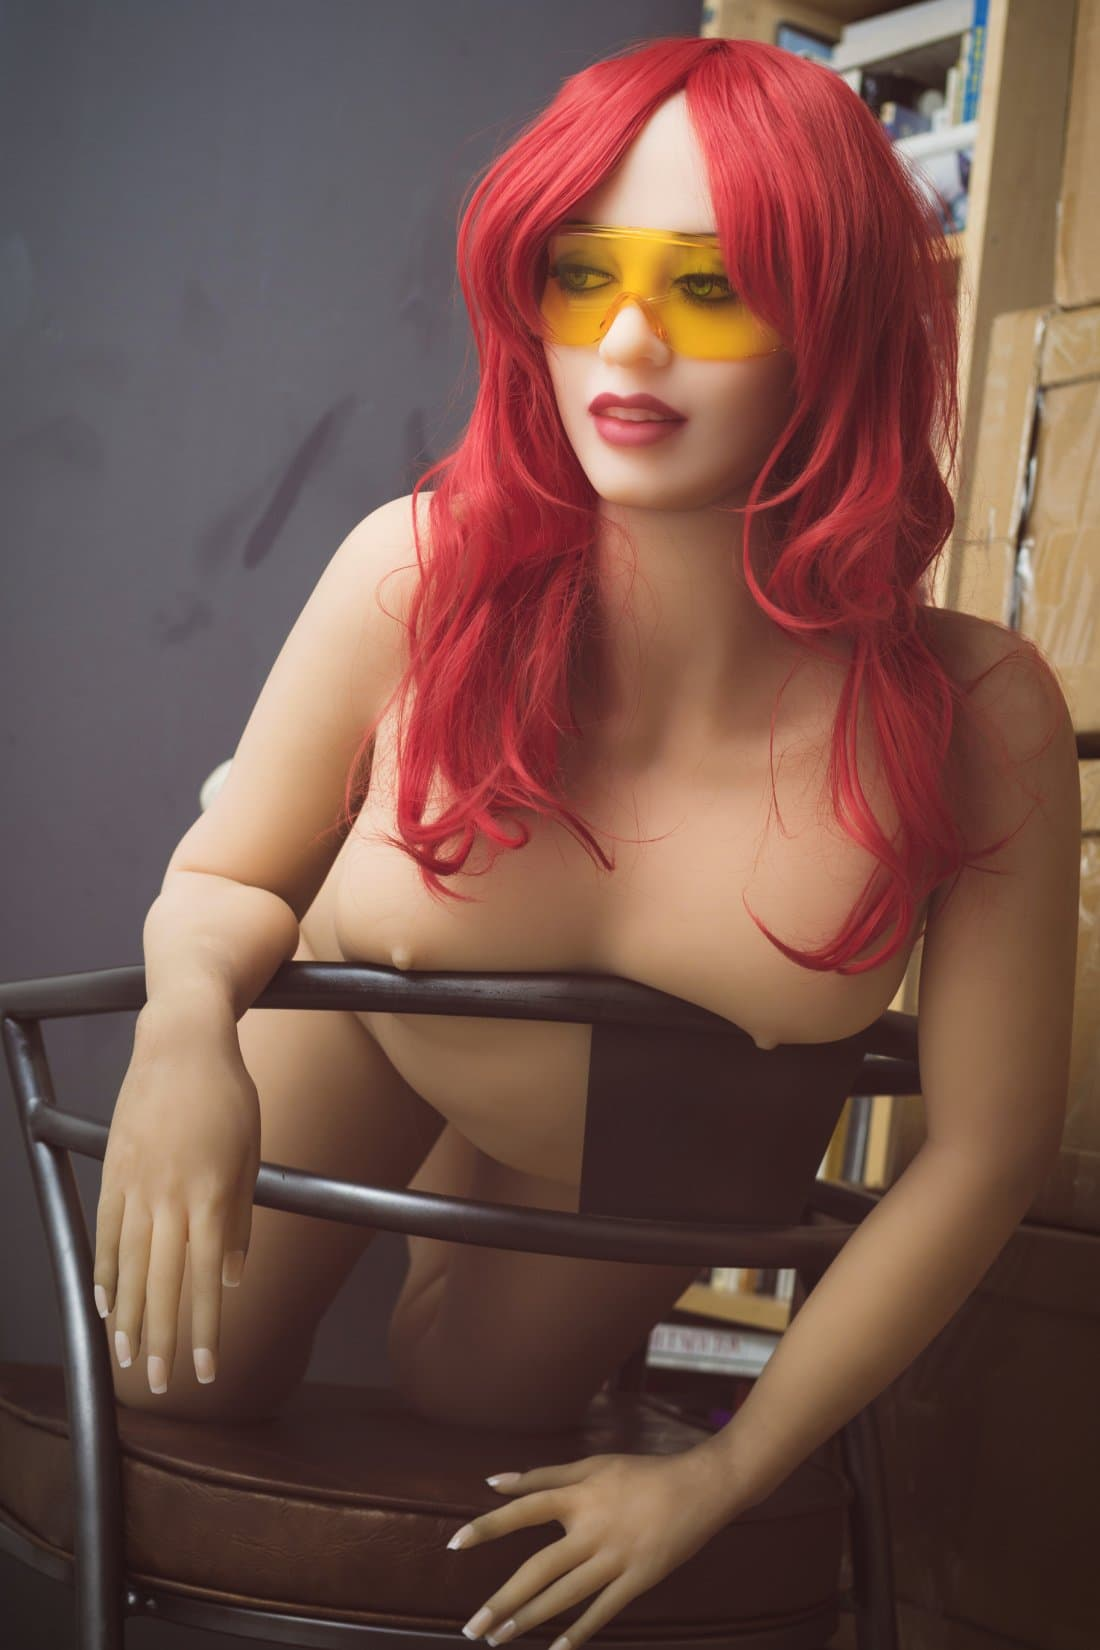 irina 162cm curvy medium tits athletic red hair tpe wm sex doll(11)